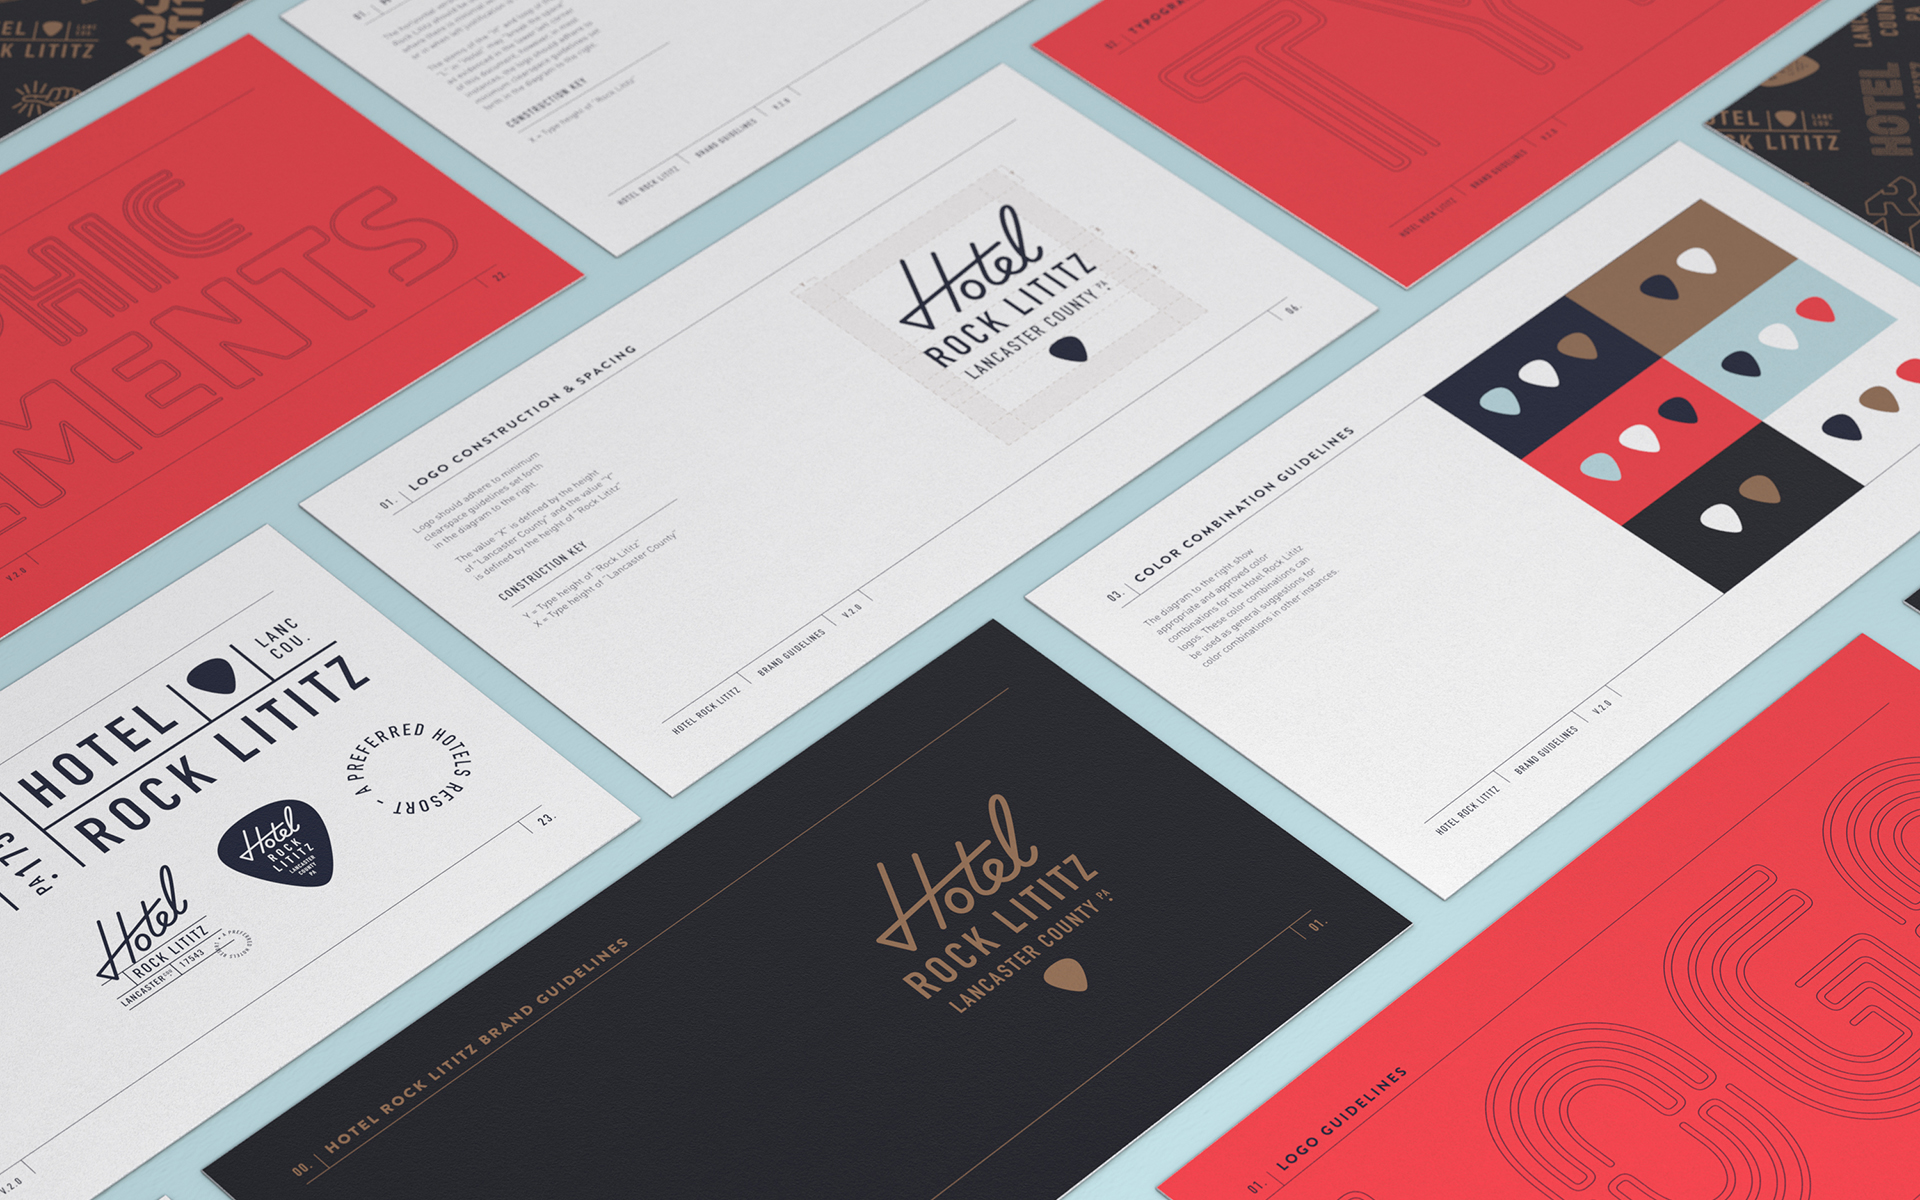 isometric perspective of Hotel Rock Lititz brand guidelines document